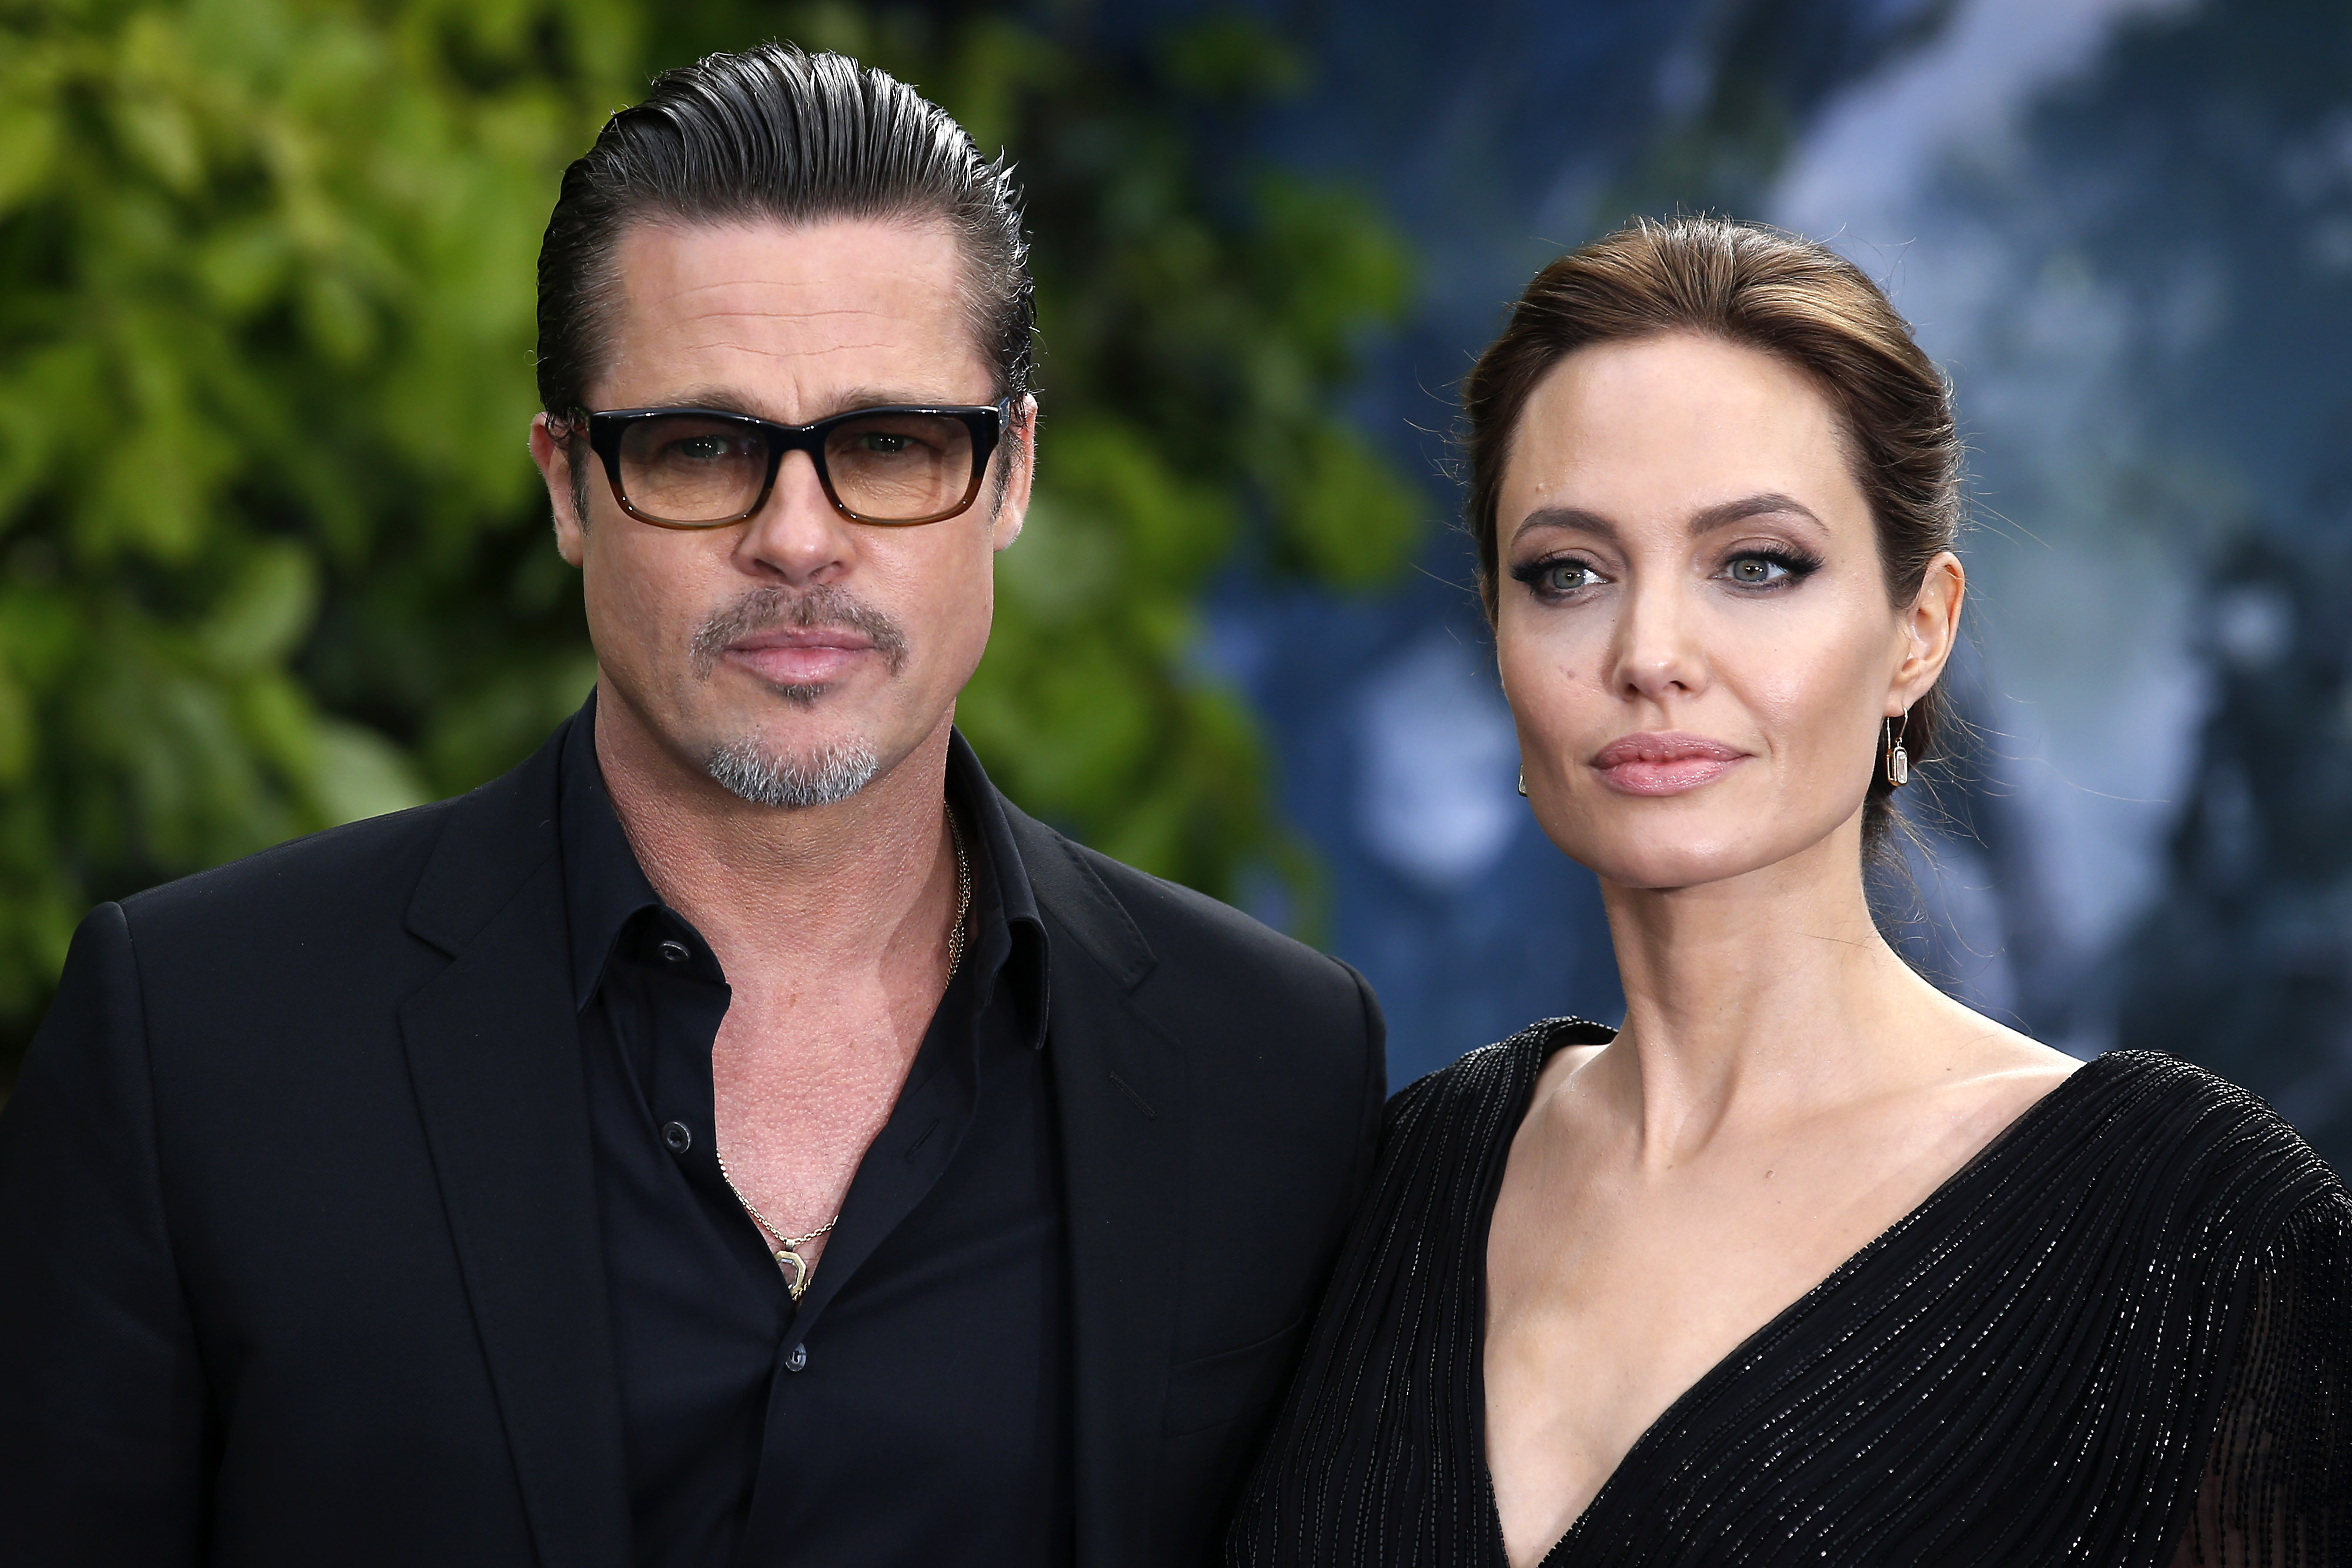 File photo dated 08/05/14 of Brad Pitt and his wife Angelina Jolie attending the premiere of Maleficent at Kensington Palace, London, as Hollywood star Jolie has filed for divorce, TMZ has reported., Image: 300490898, License: Rights-managed, Restrictions: FILE PHOTO, Model Release: no, Credit line: Profimedia, Press Association